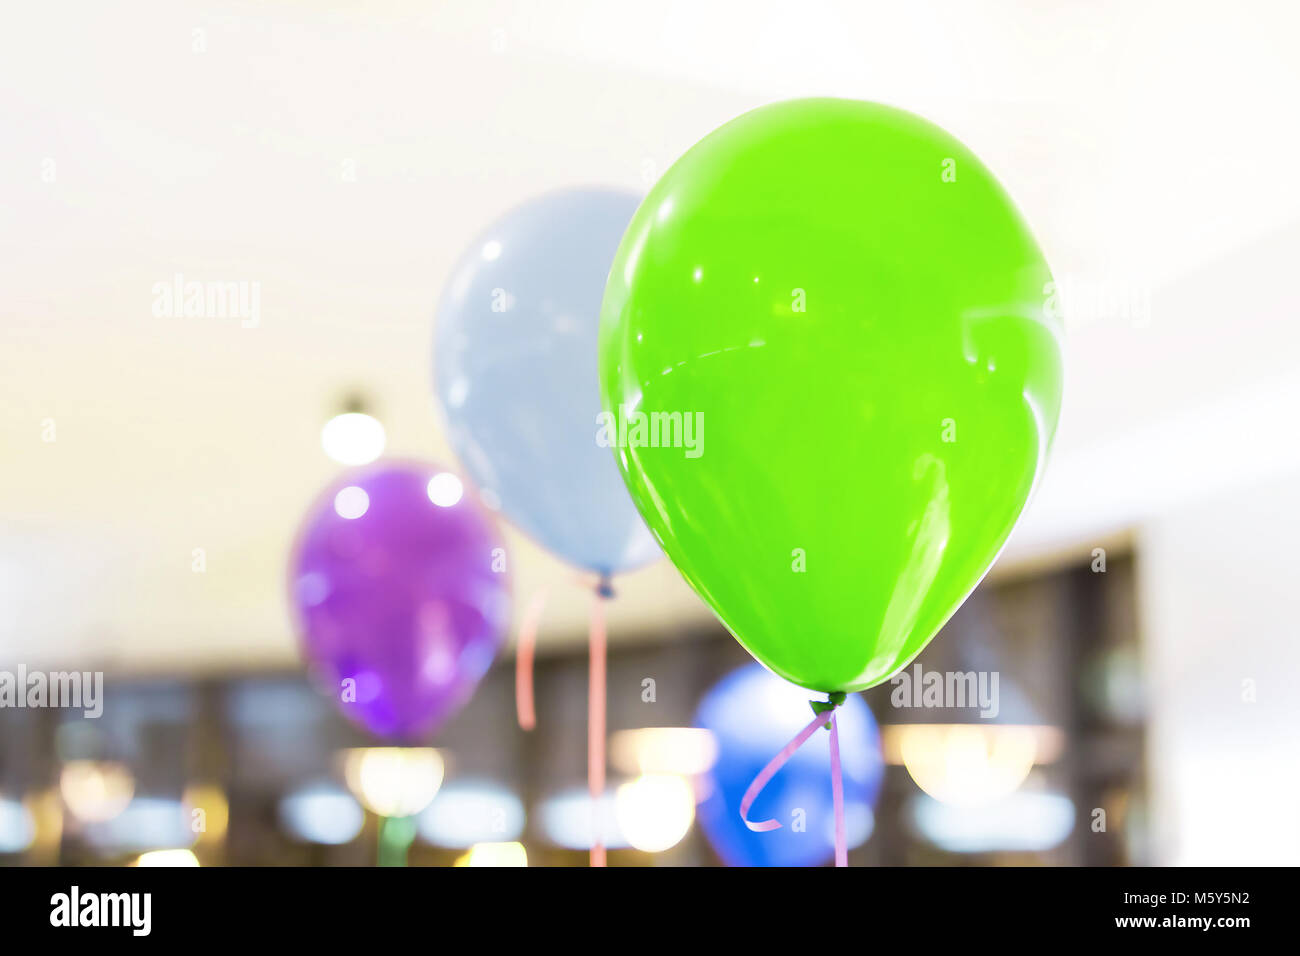 Multicolored air baloons indoor. Preparation for party. Decoration of interior. Children birthday celebration concept - Stock Image